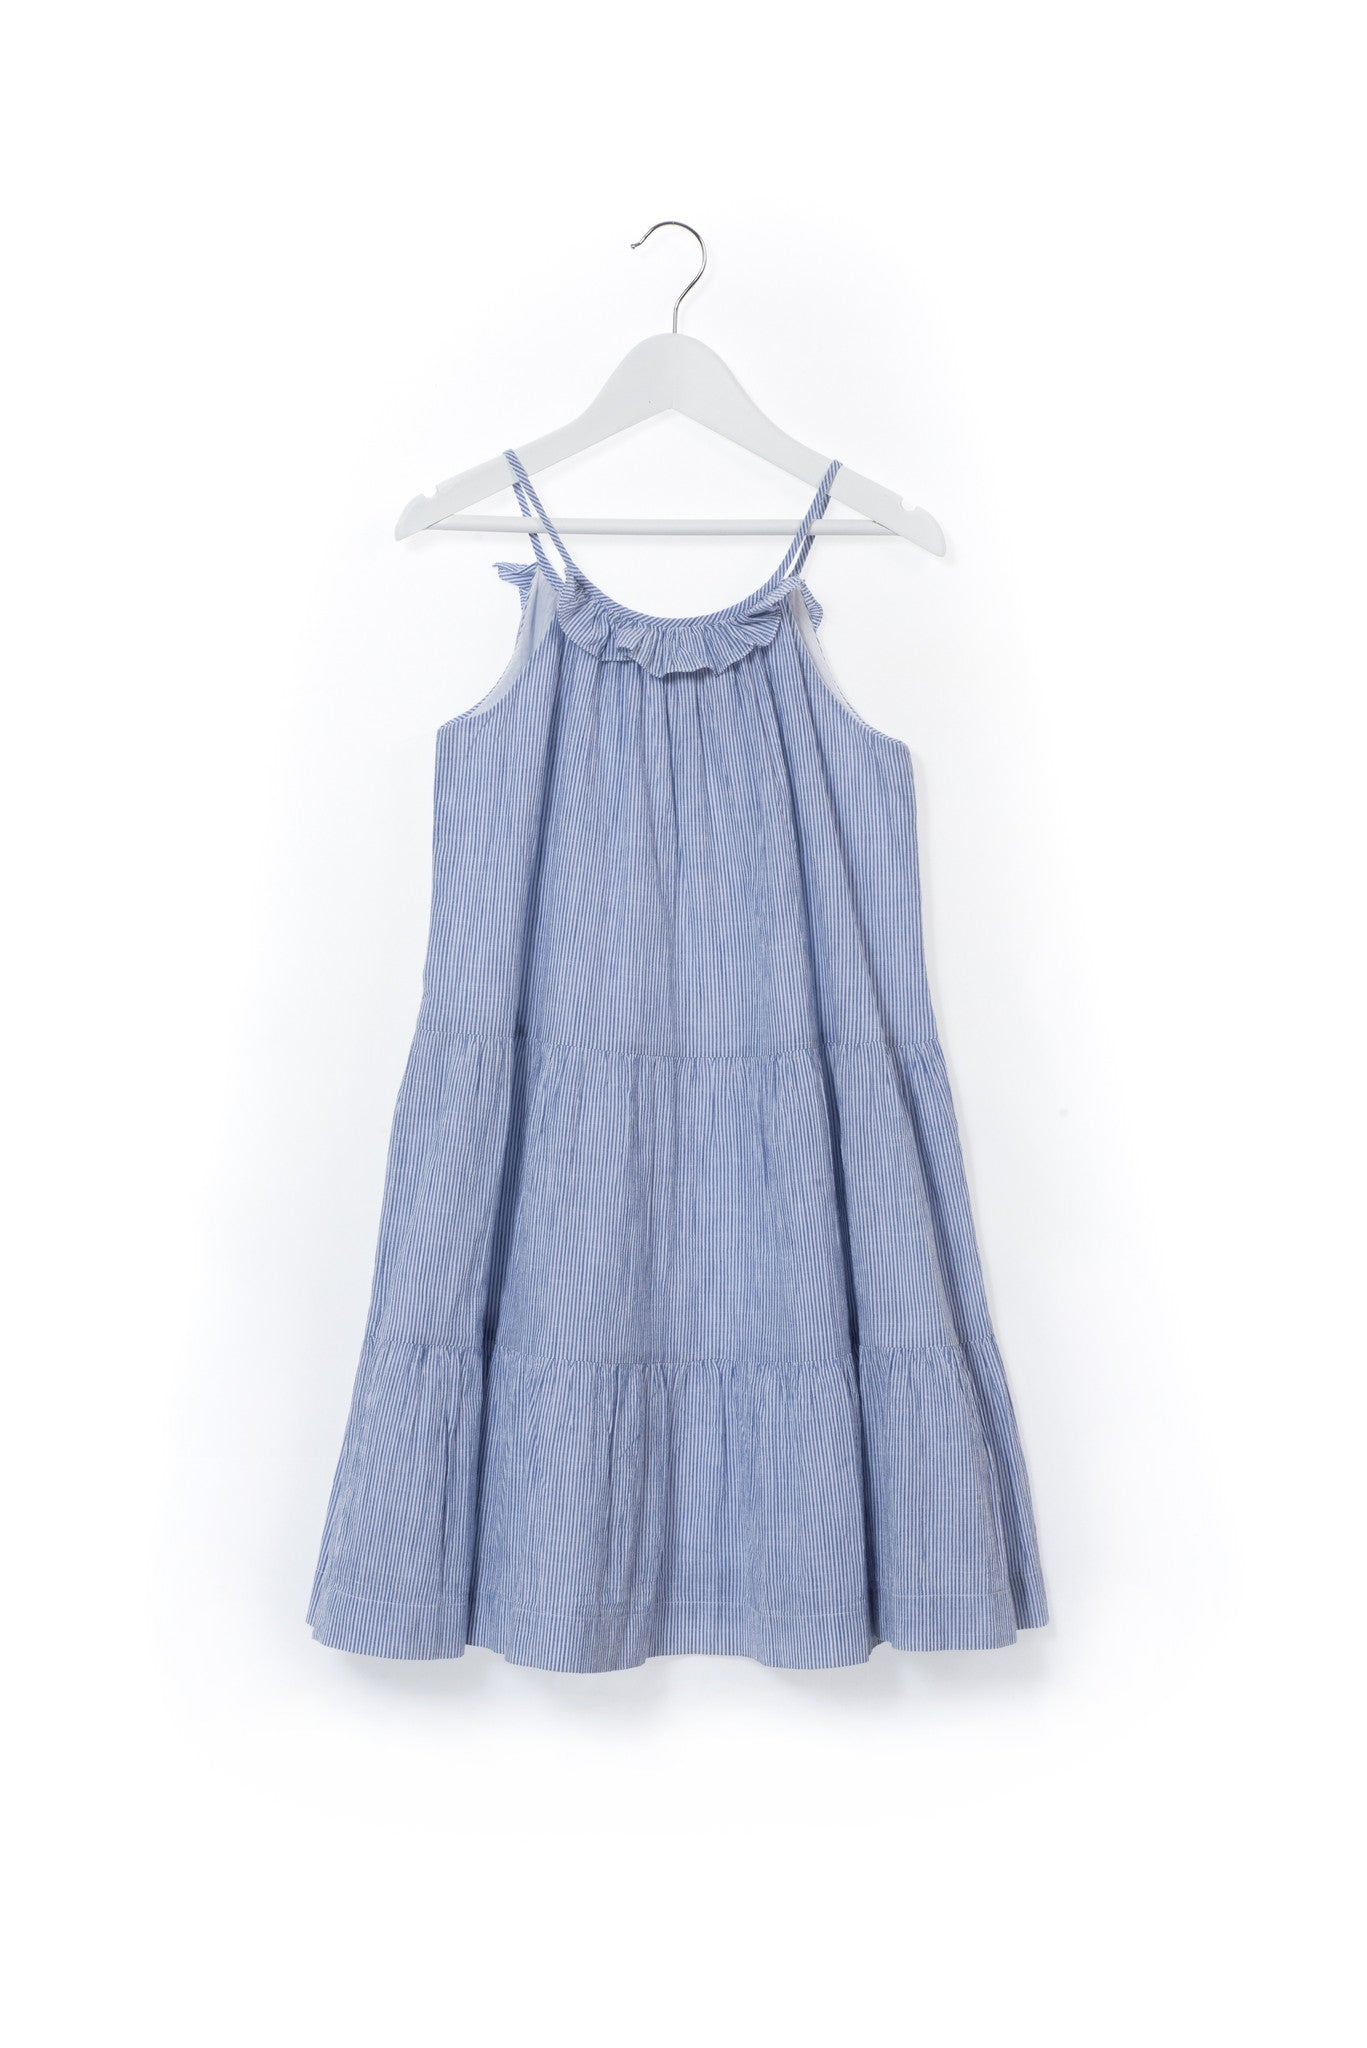 10001066 Bonpoint Kids~Dress 6T at Retykle